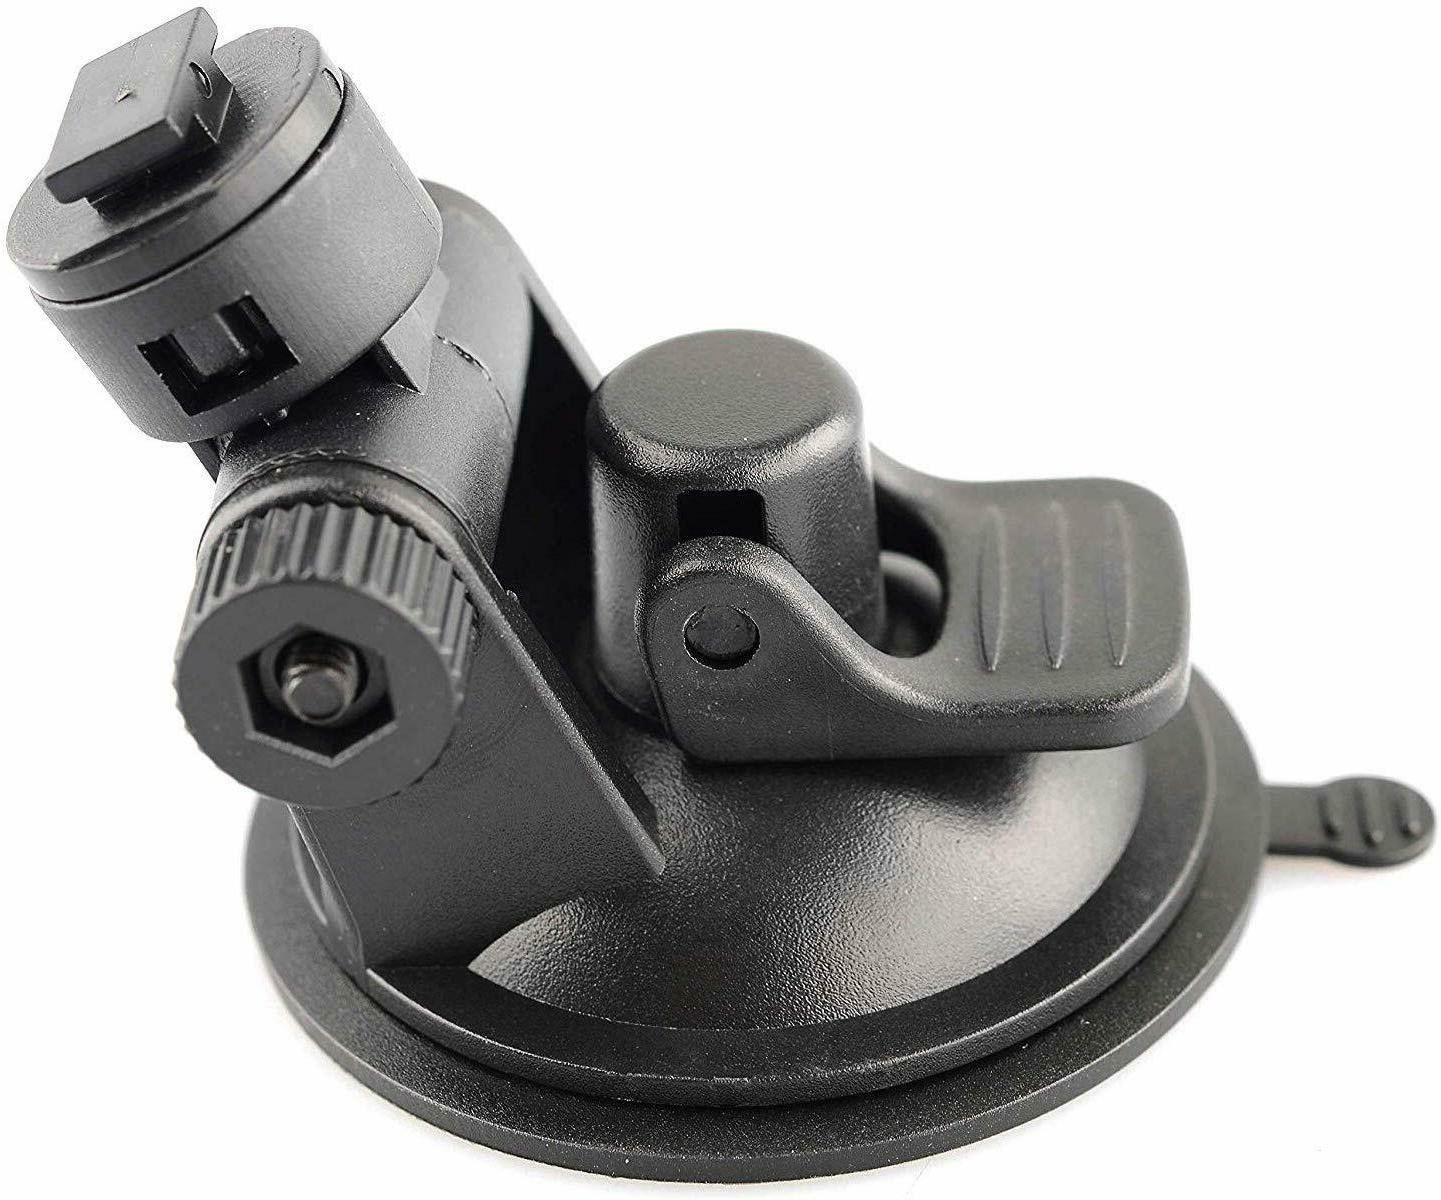 v1 suction cup mount